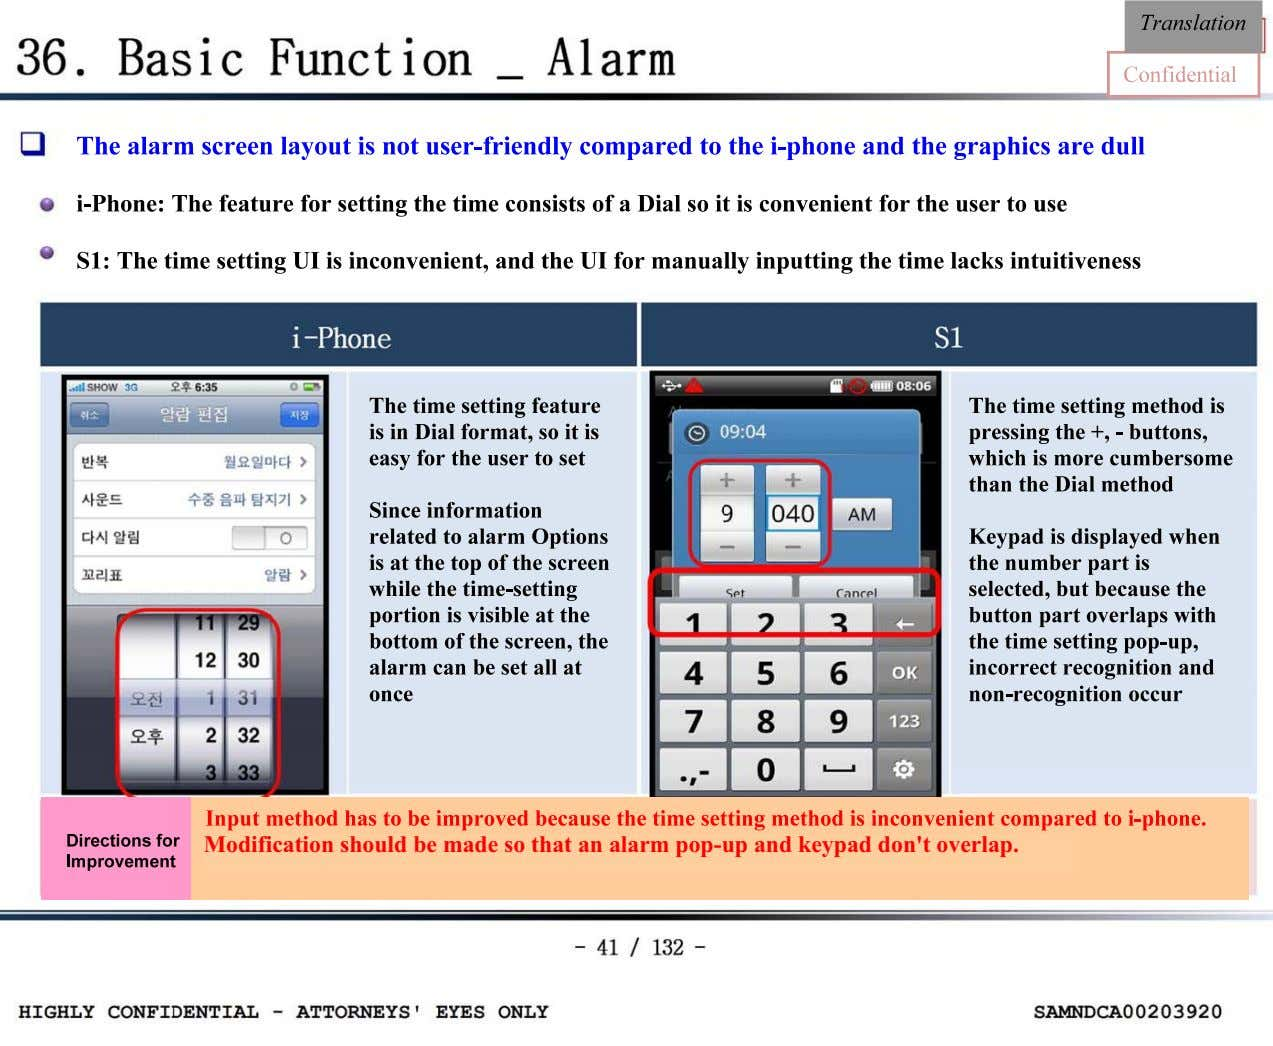 Modification should be made so that an alarm pop-up and keypad don't overlap.